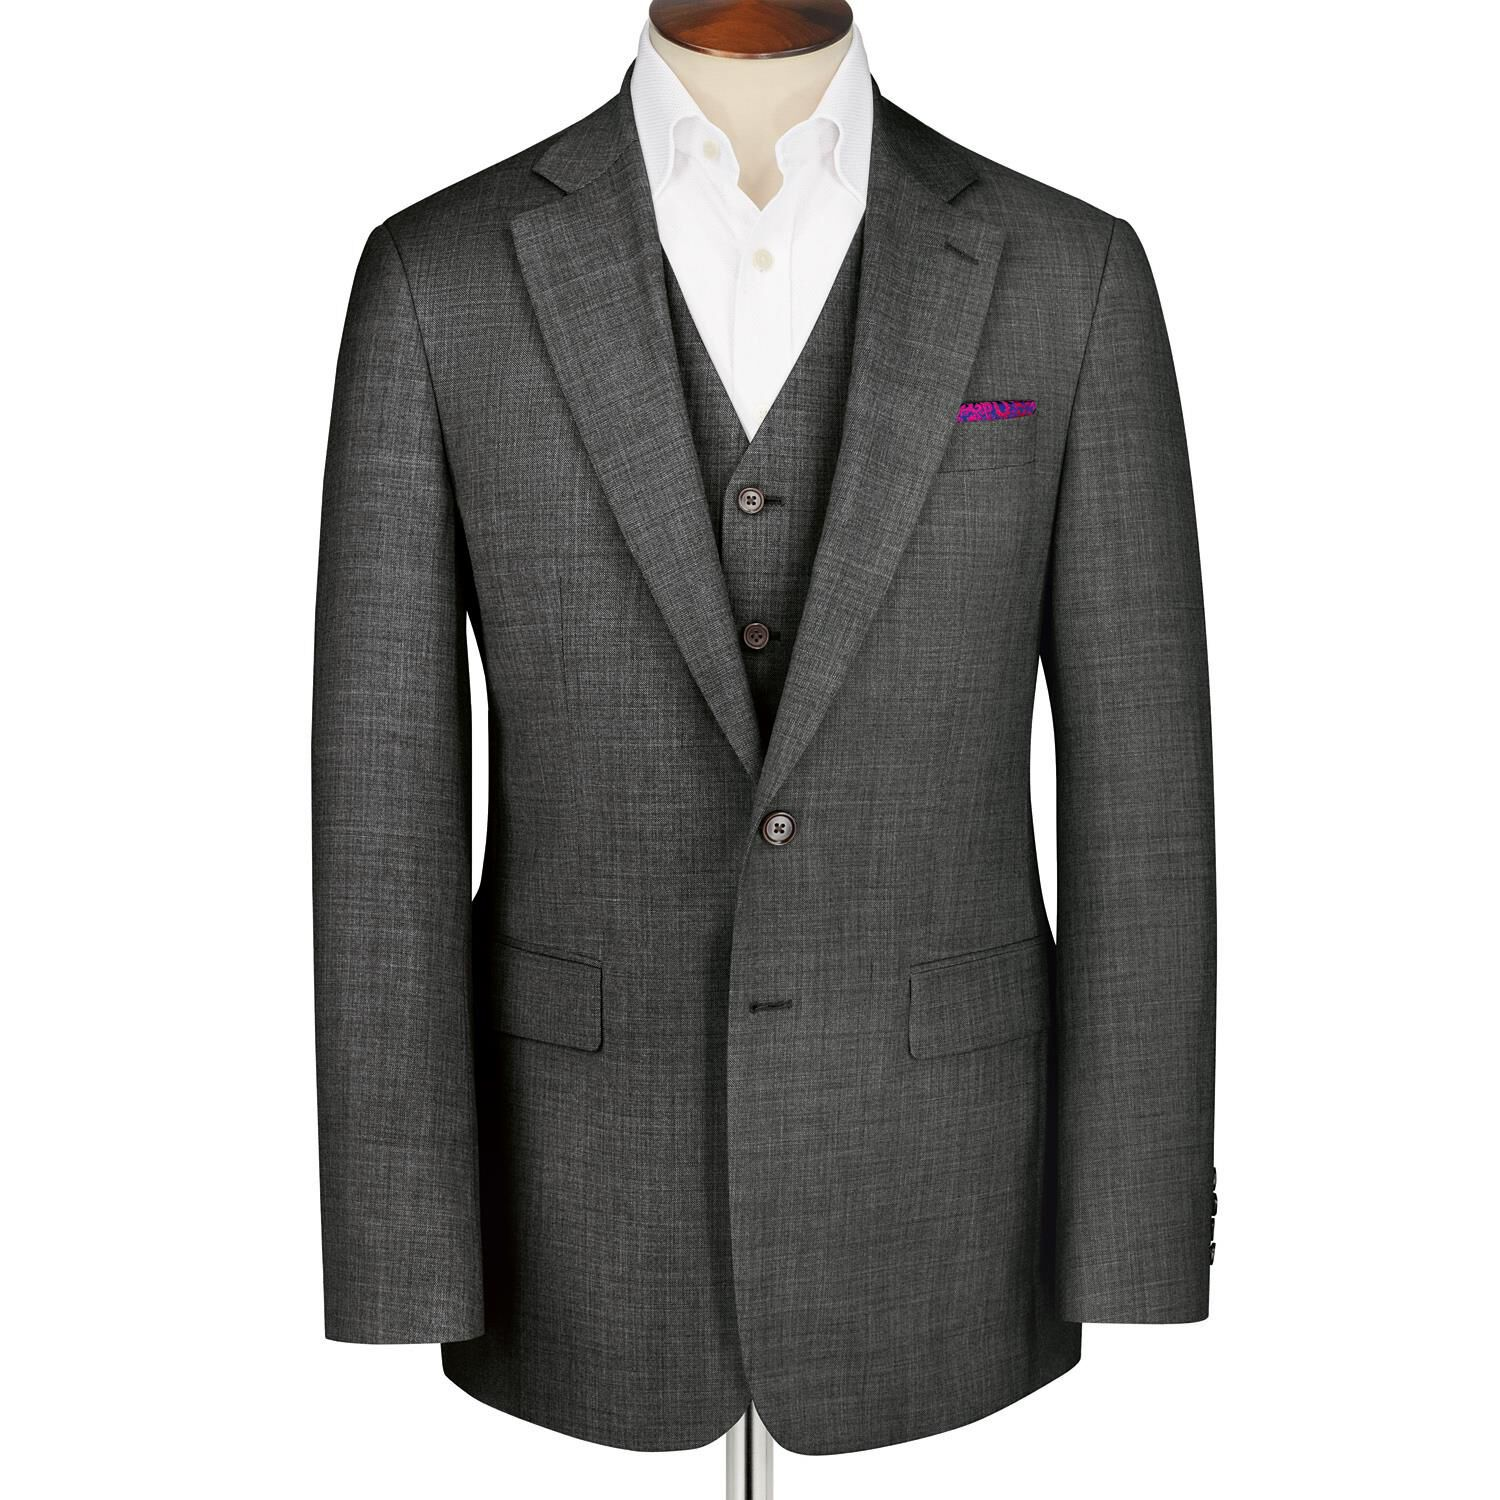 Grey Classic Fit Apsley Sharkskin Business Suit Super 100 Wool Jacket Size 38 Long by Charles Tyrwhi